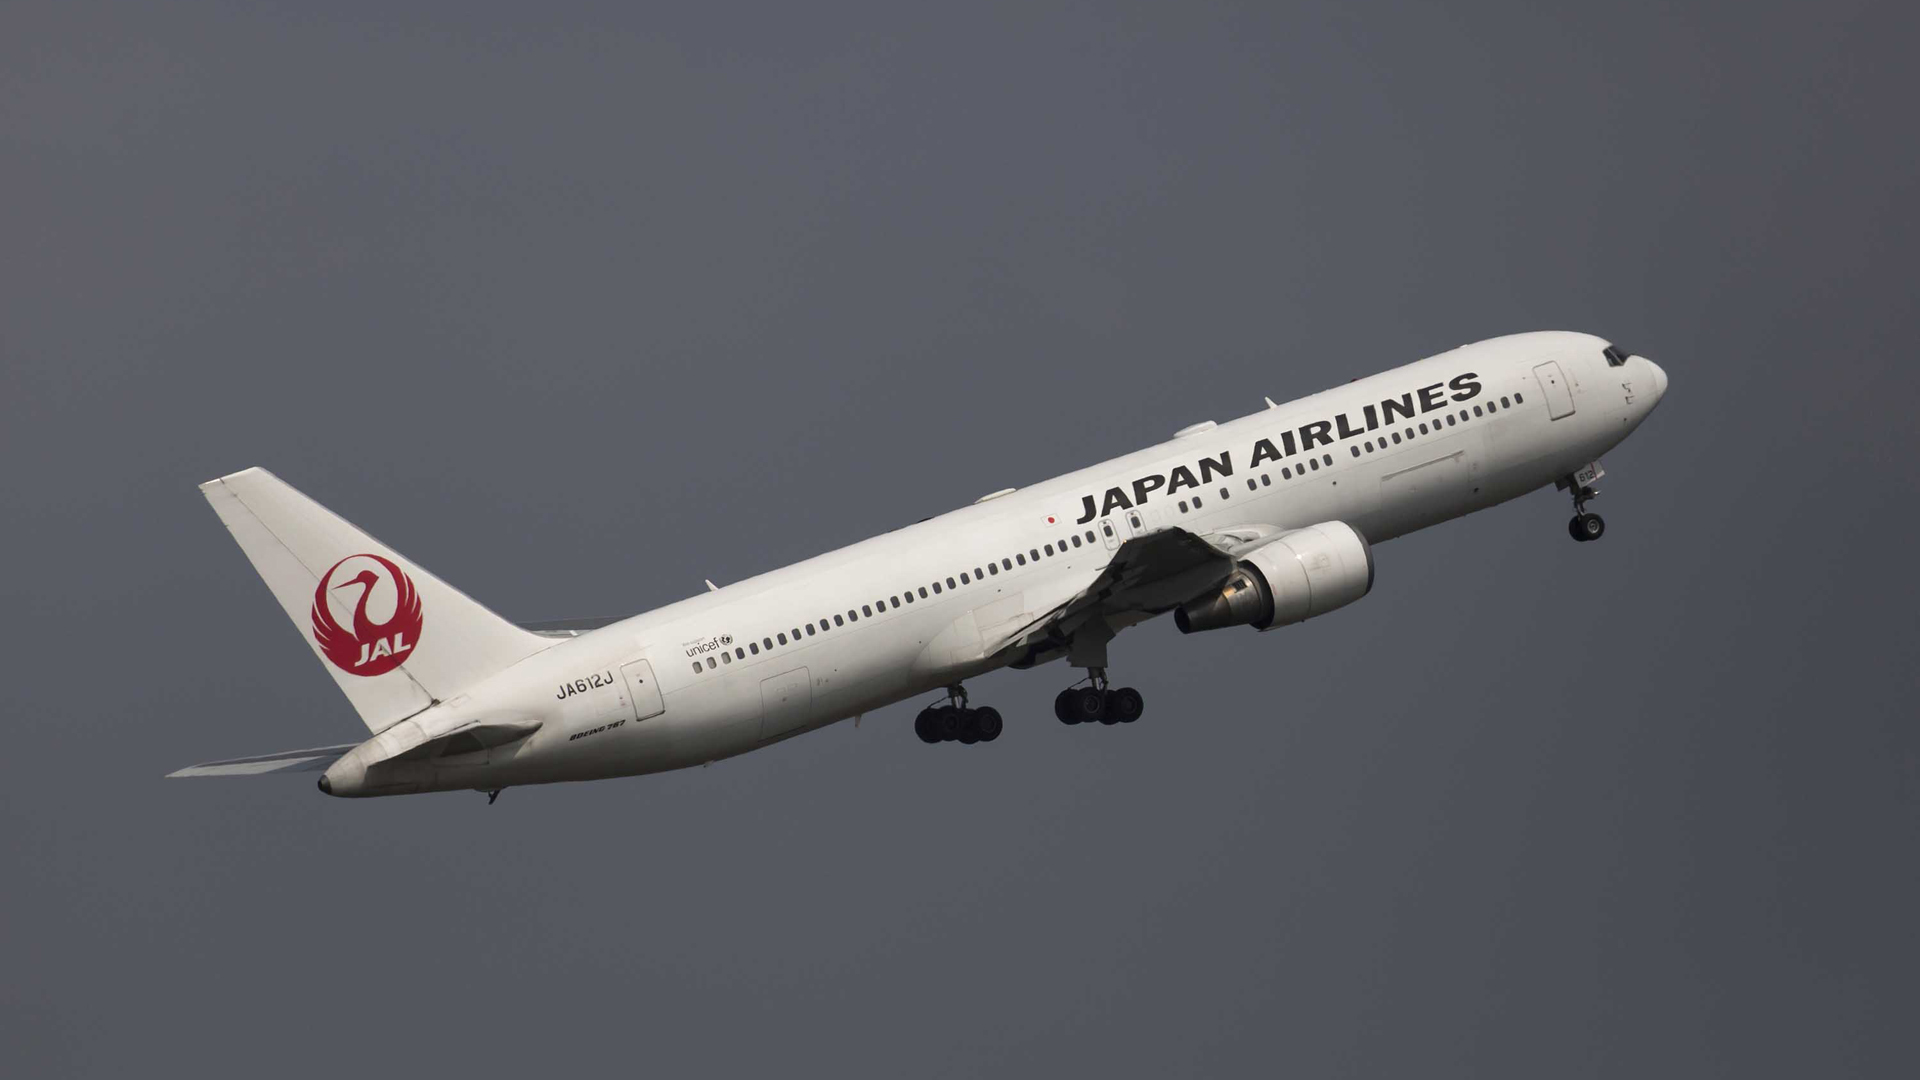 A Japan Airlines Co. aircraft takes off at Haneda Airport ahead of Golden Week, on April 21, 2019 in Tokyo, Japan. (Credit: Tomohiro Ohsumi/Getty Images)